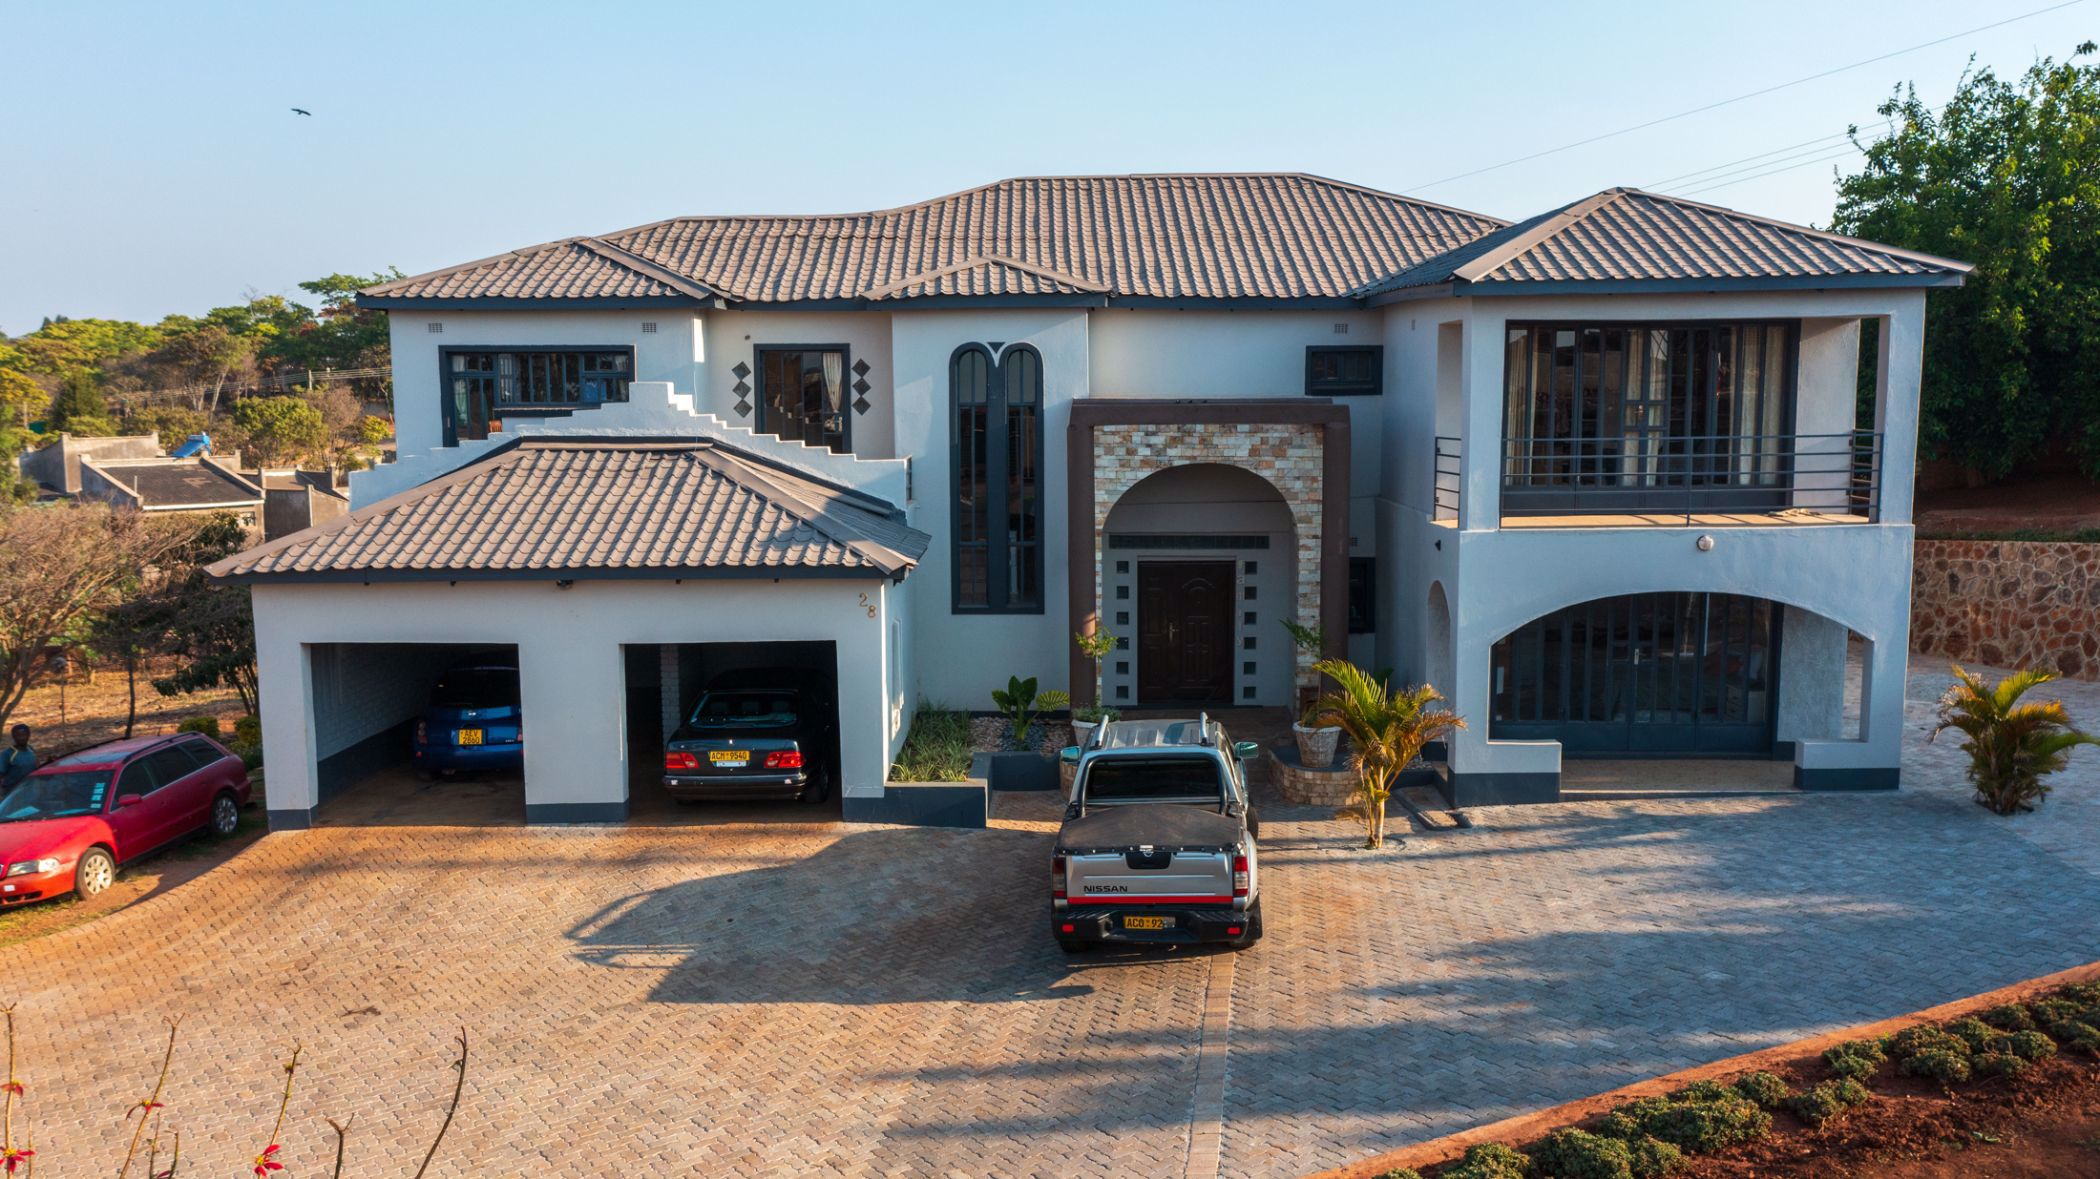 6 bedroom house for sale in Hogerty hill (Zimbabwe)